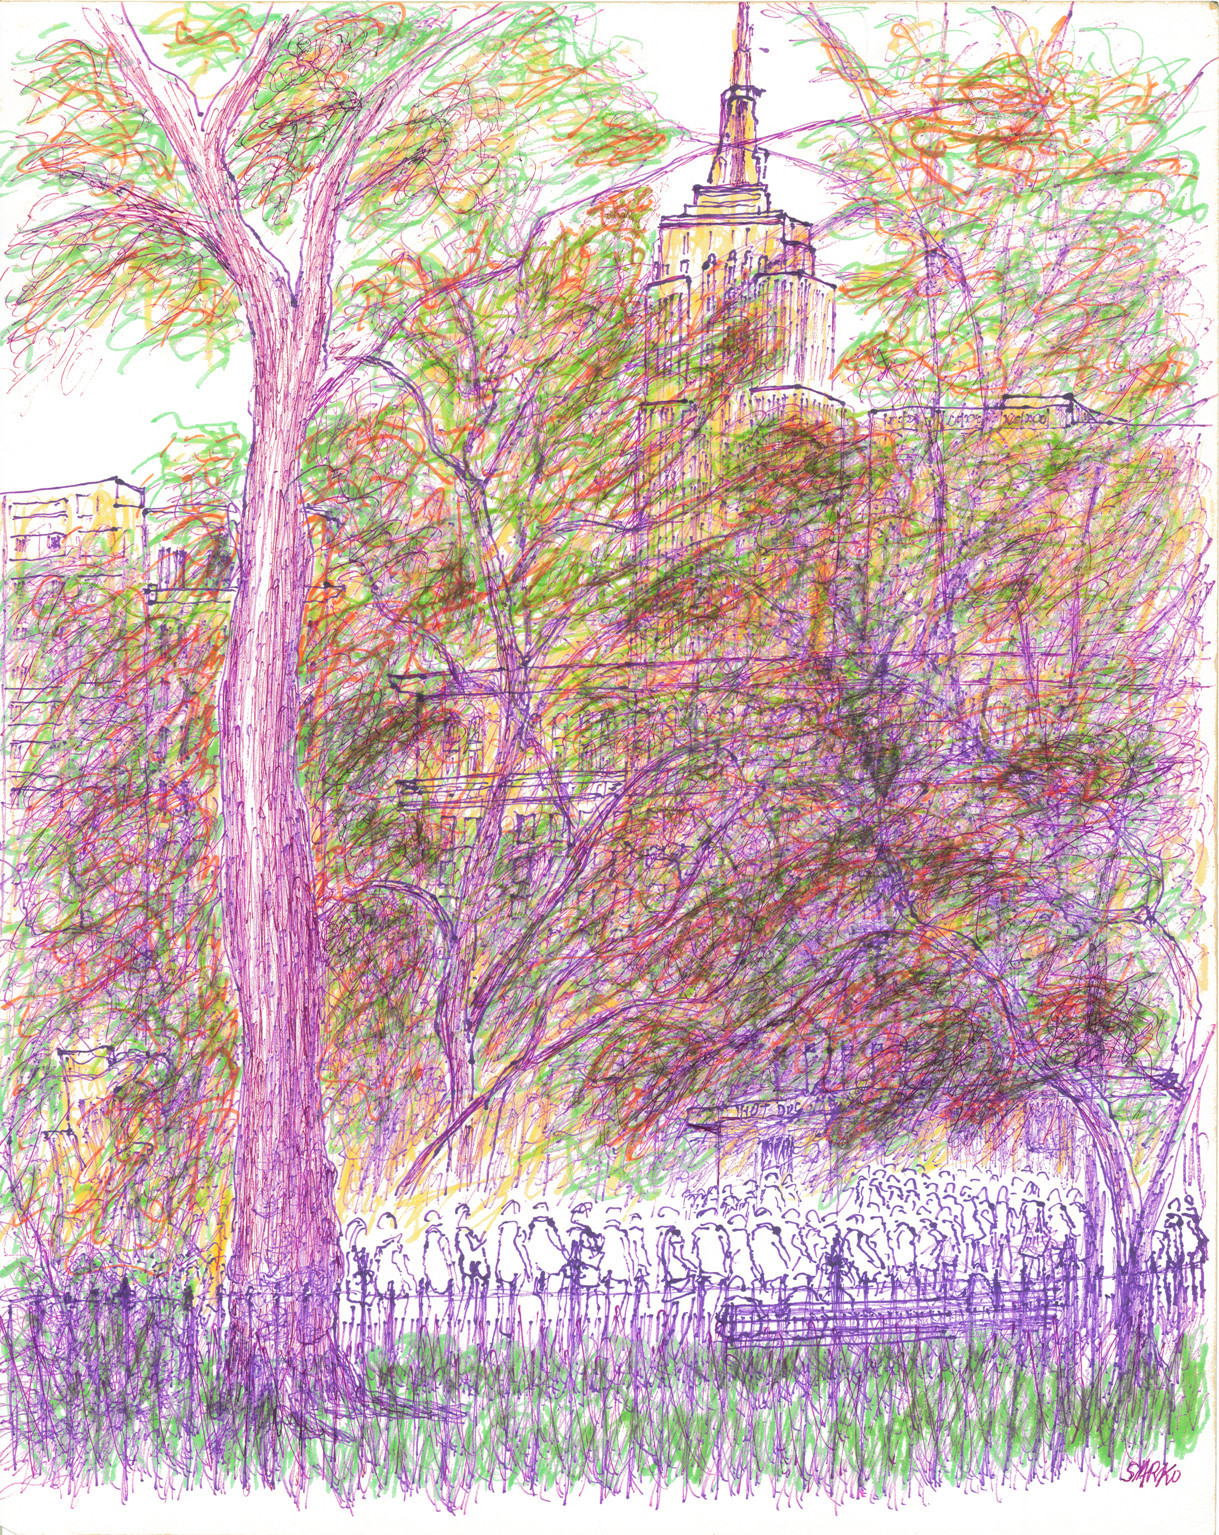 E 23rd St To Madison Park Drawing By Sarko Of New York Artmajeur